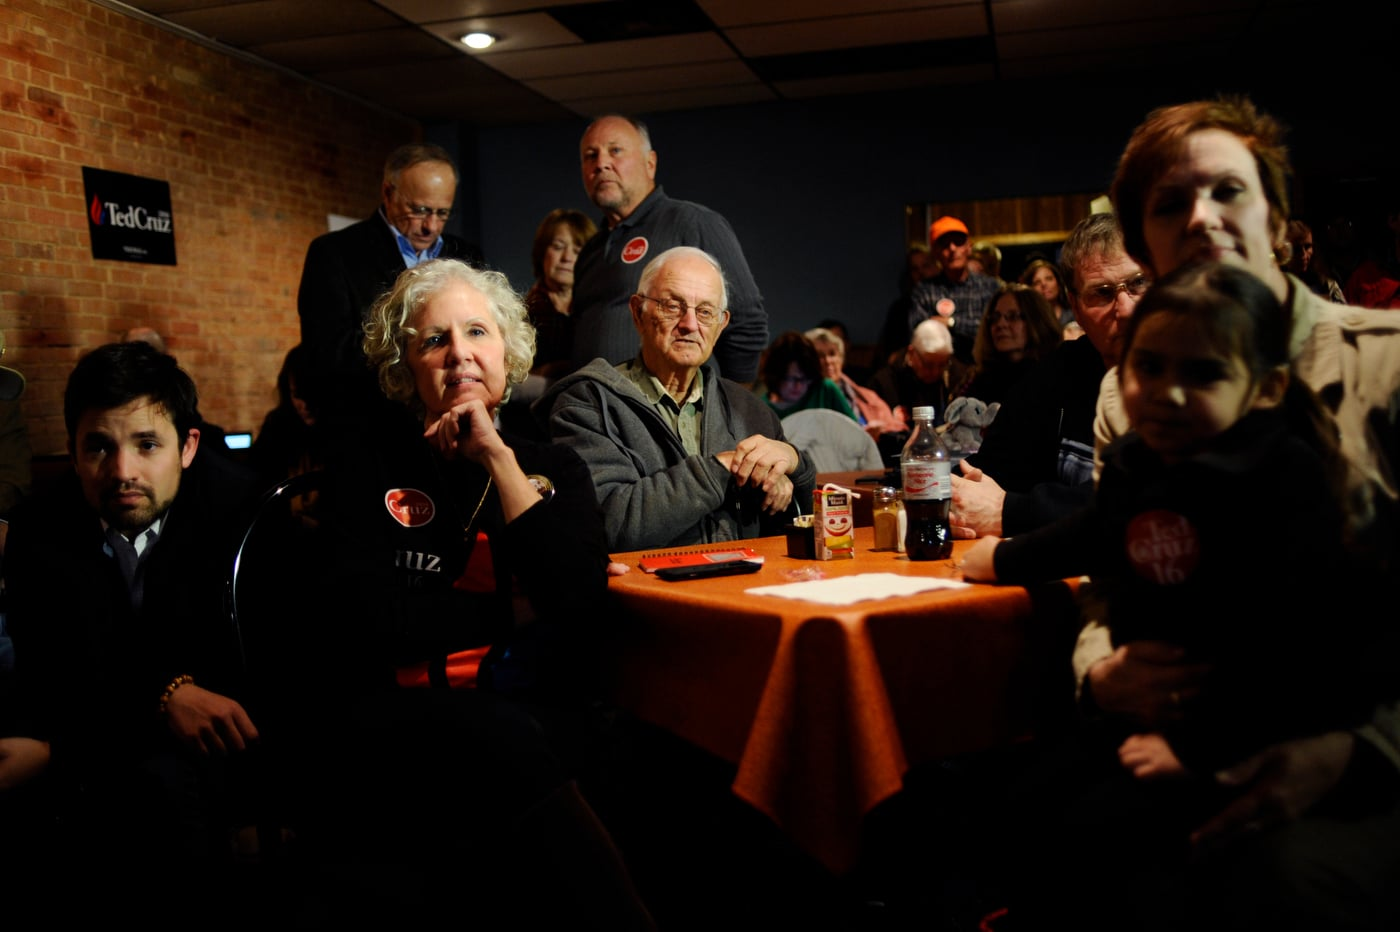 Supporters listen as U.S. Republican presidential candidate Ted Cruz does a live television interview ahead of his campaign stop at Prime Time Restaurant in Guthrie Center, Iowa January 4, 2016. REUTERS/Mark Kauzlarich